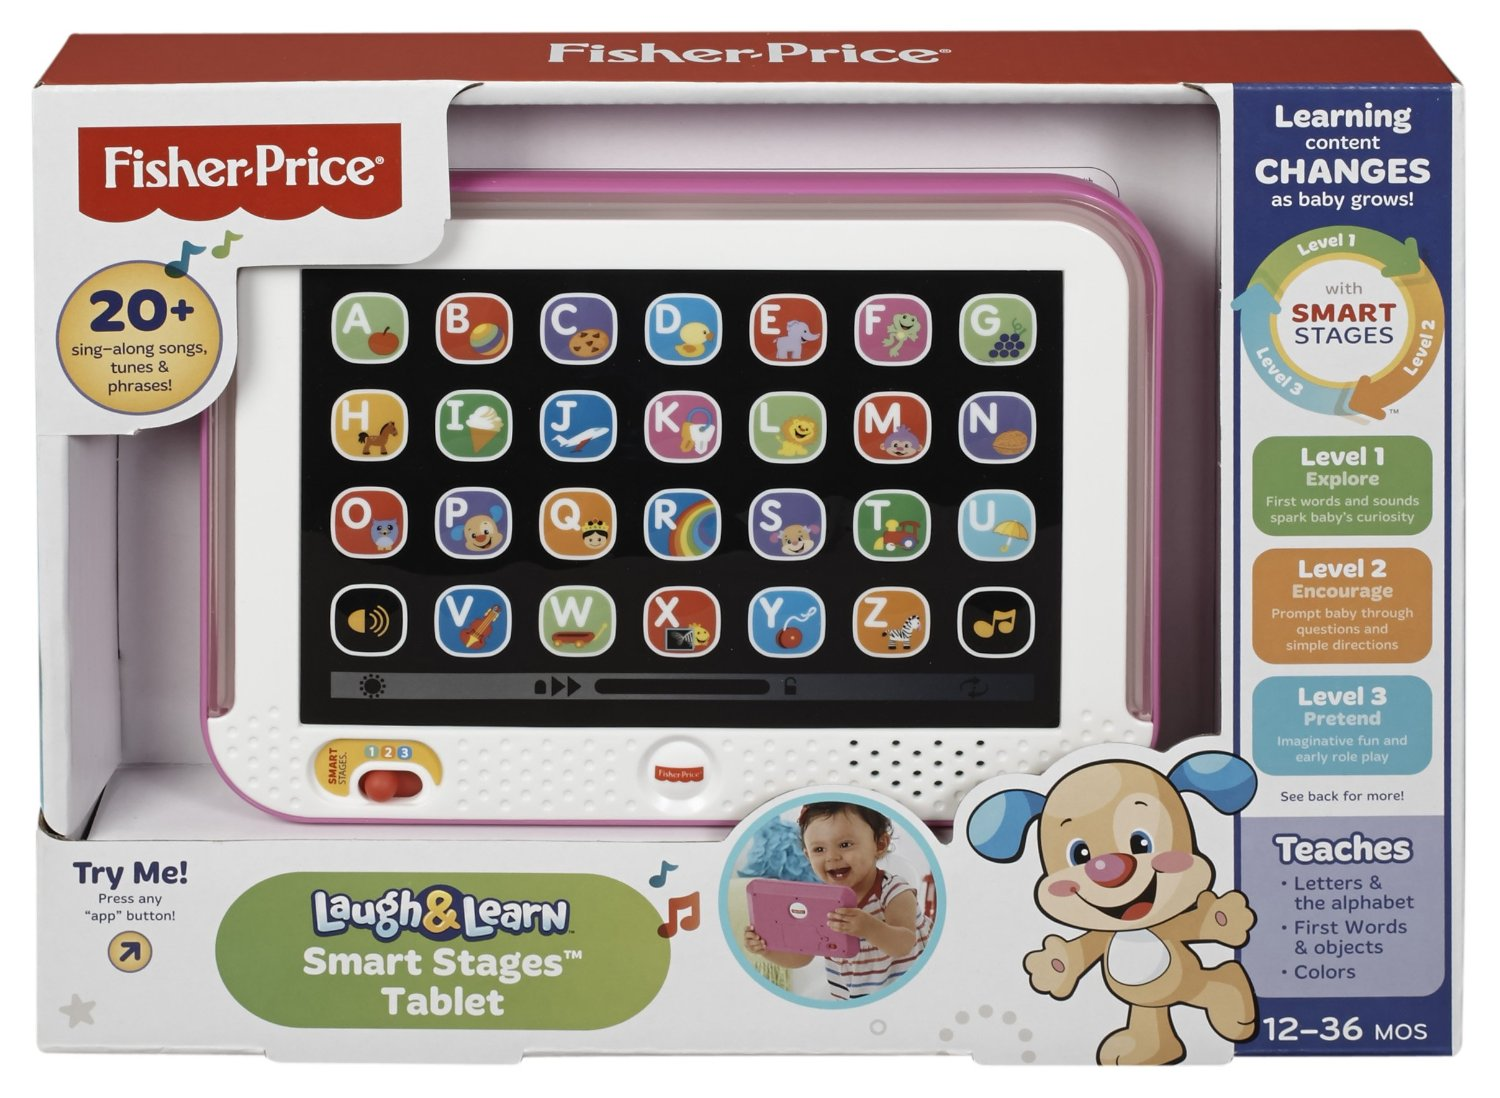 Fisher Price Laugh and Learn Smart Stages Tablet Only $11.24! (25% Off!)